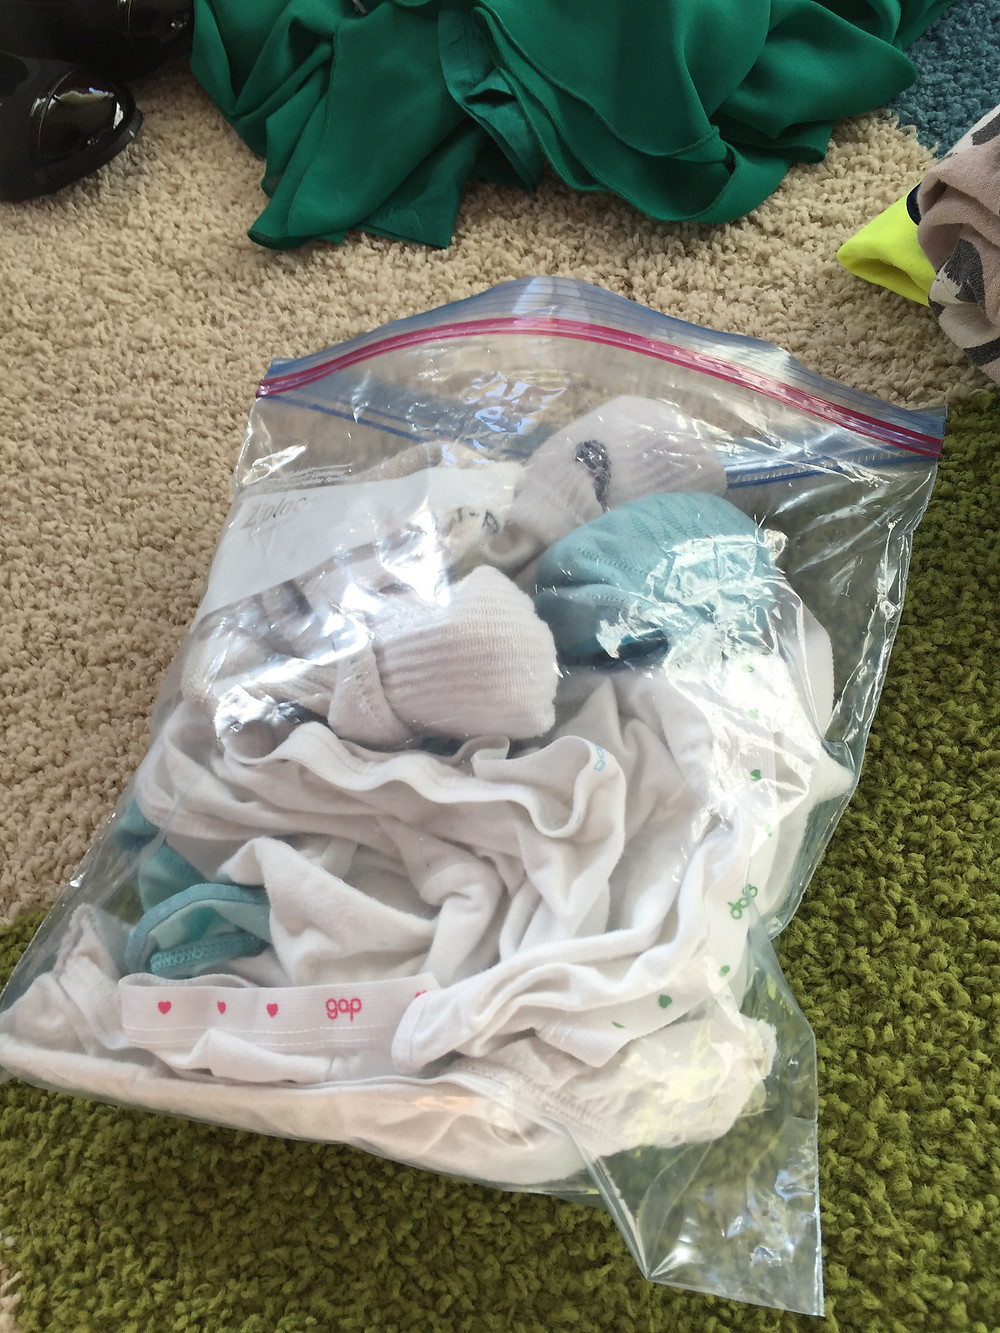 Traveling with Kids - Bundle like clothes together and put them in a plastic zip-top bag